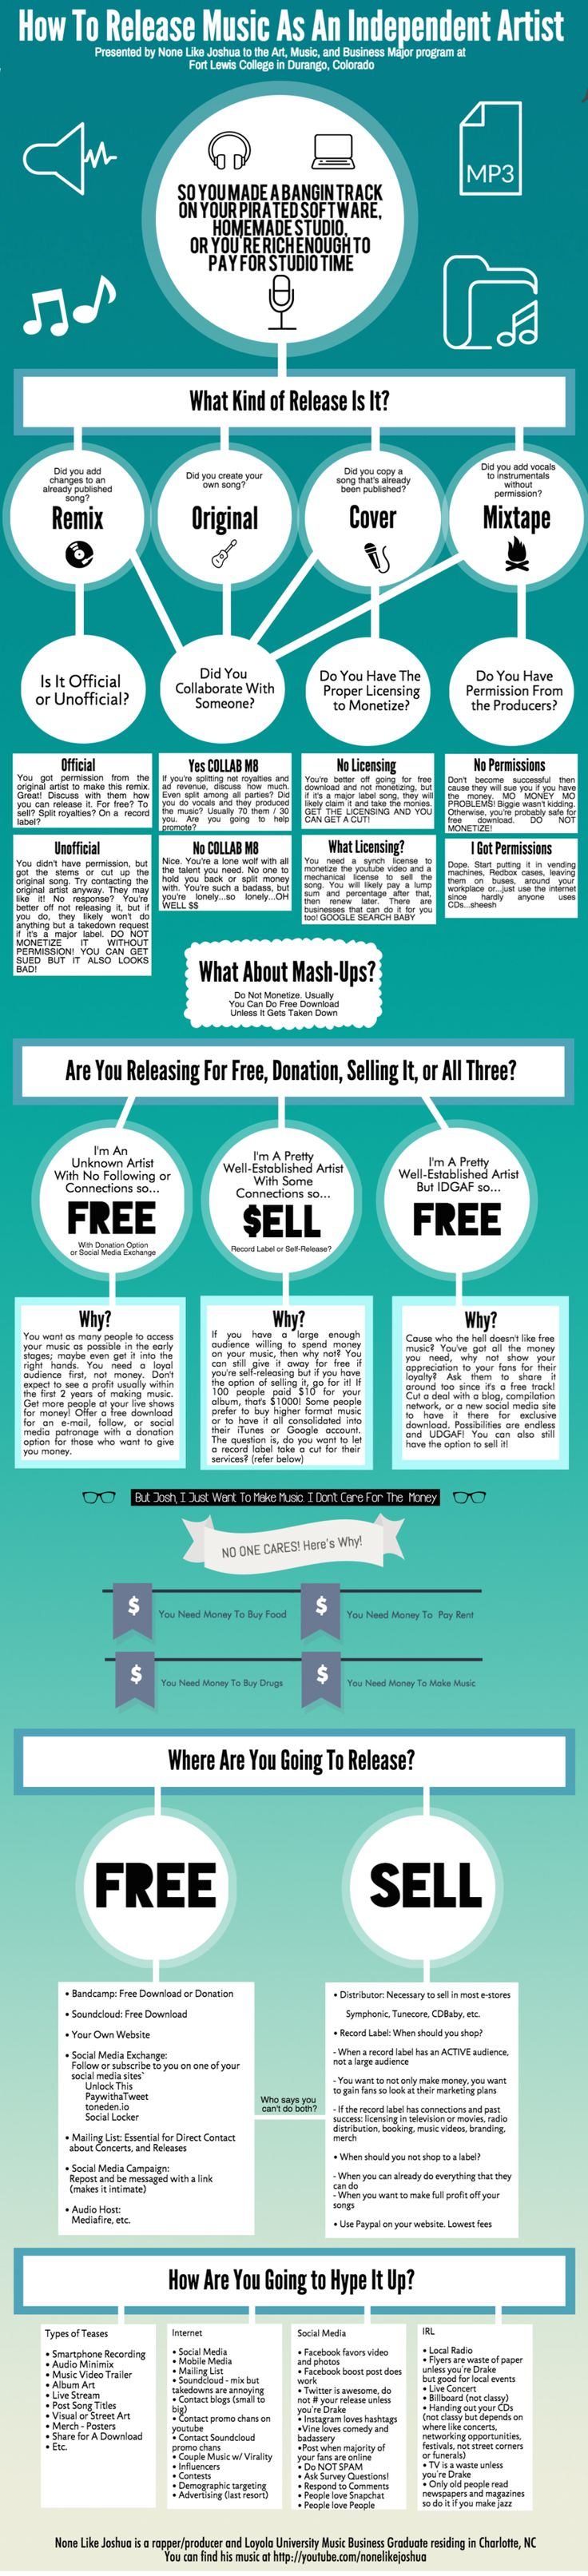 This infographic gives a nice overview of the various steps for releasing music as an indie artist.